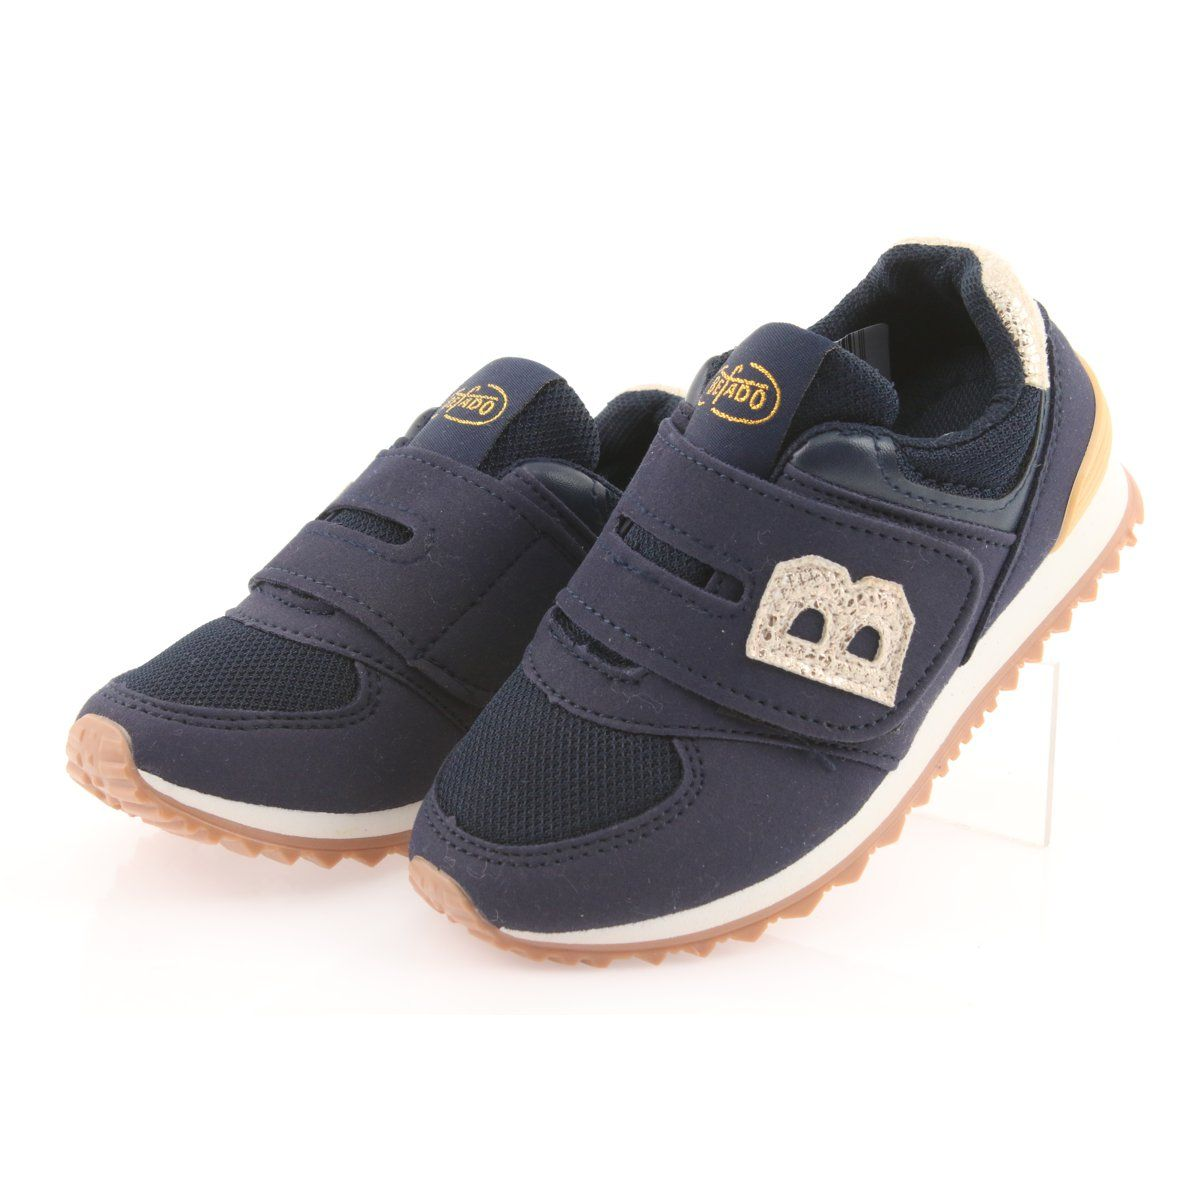 Befado Children S Shoes Up To 23 Cm 516x038 Yellow Navy Childrens Shoes Kid Shoes Shoes